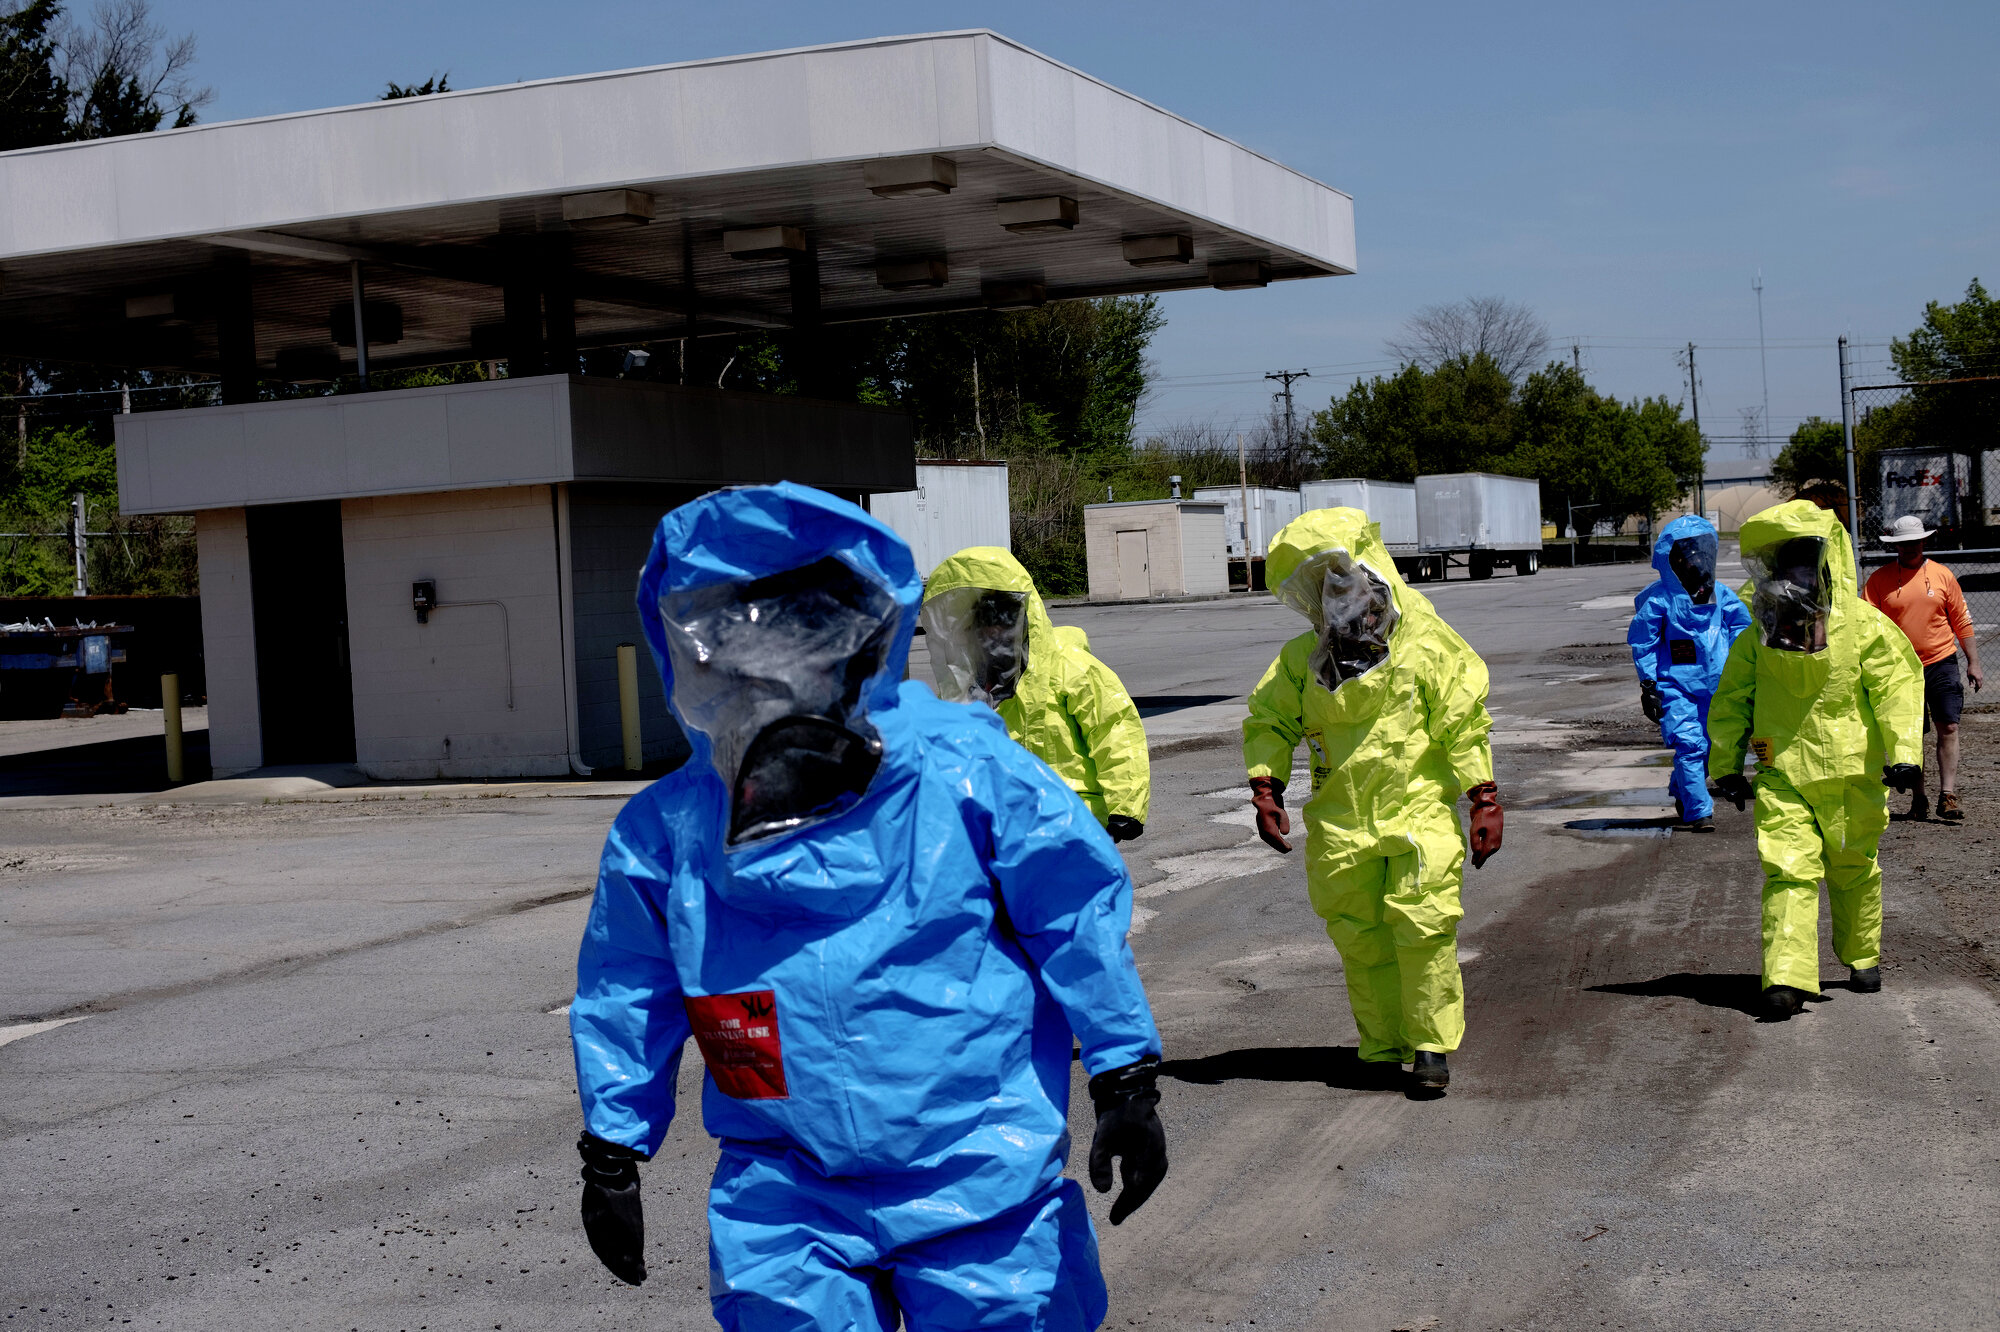 Hazardous material technicians walk in Class A hazmat suits during a field training session on remediating underground bombs and hazardous material in brown fields. Their training requires OSHA's 29 CFR 1910.120 certification, which private sector emergency responders obtain after successfully undergoing hazardous material response training.